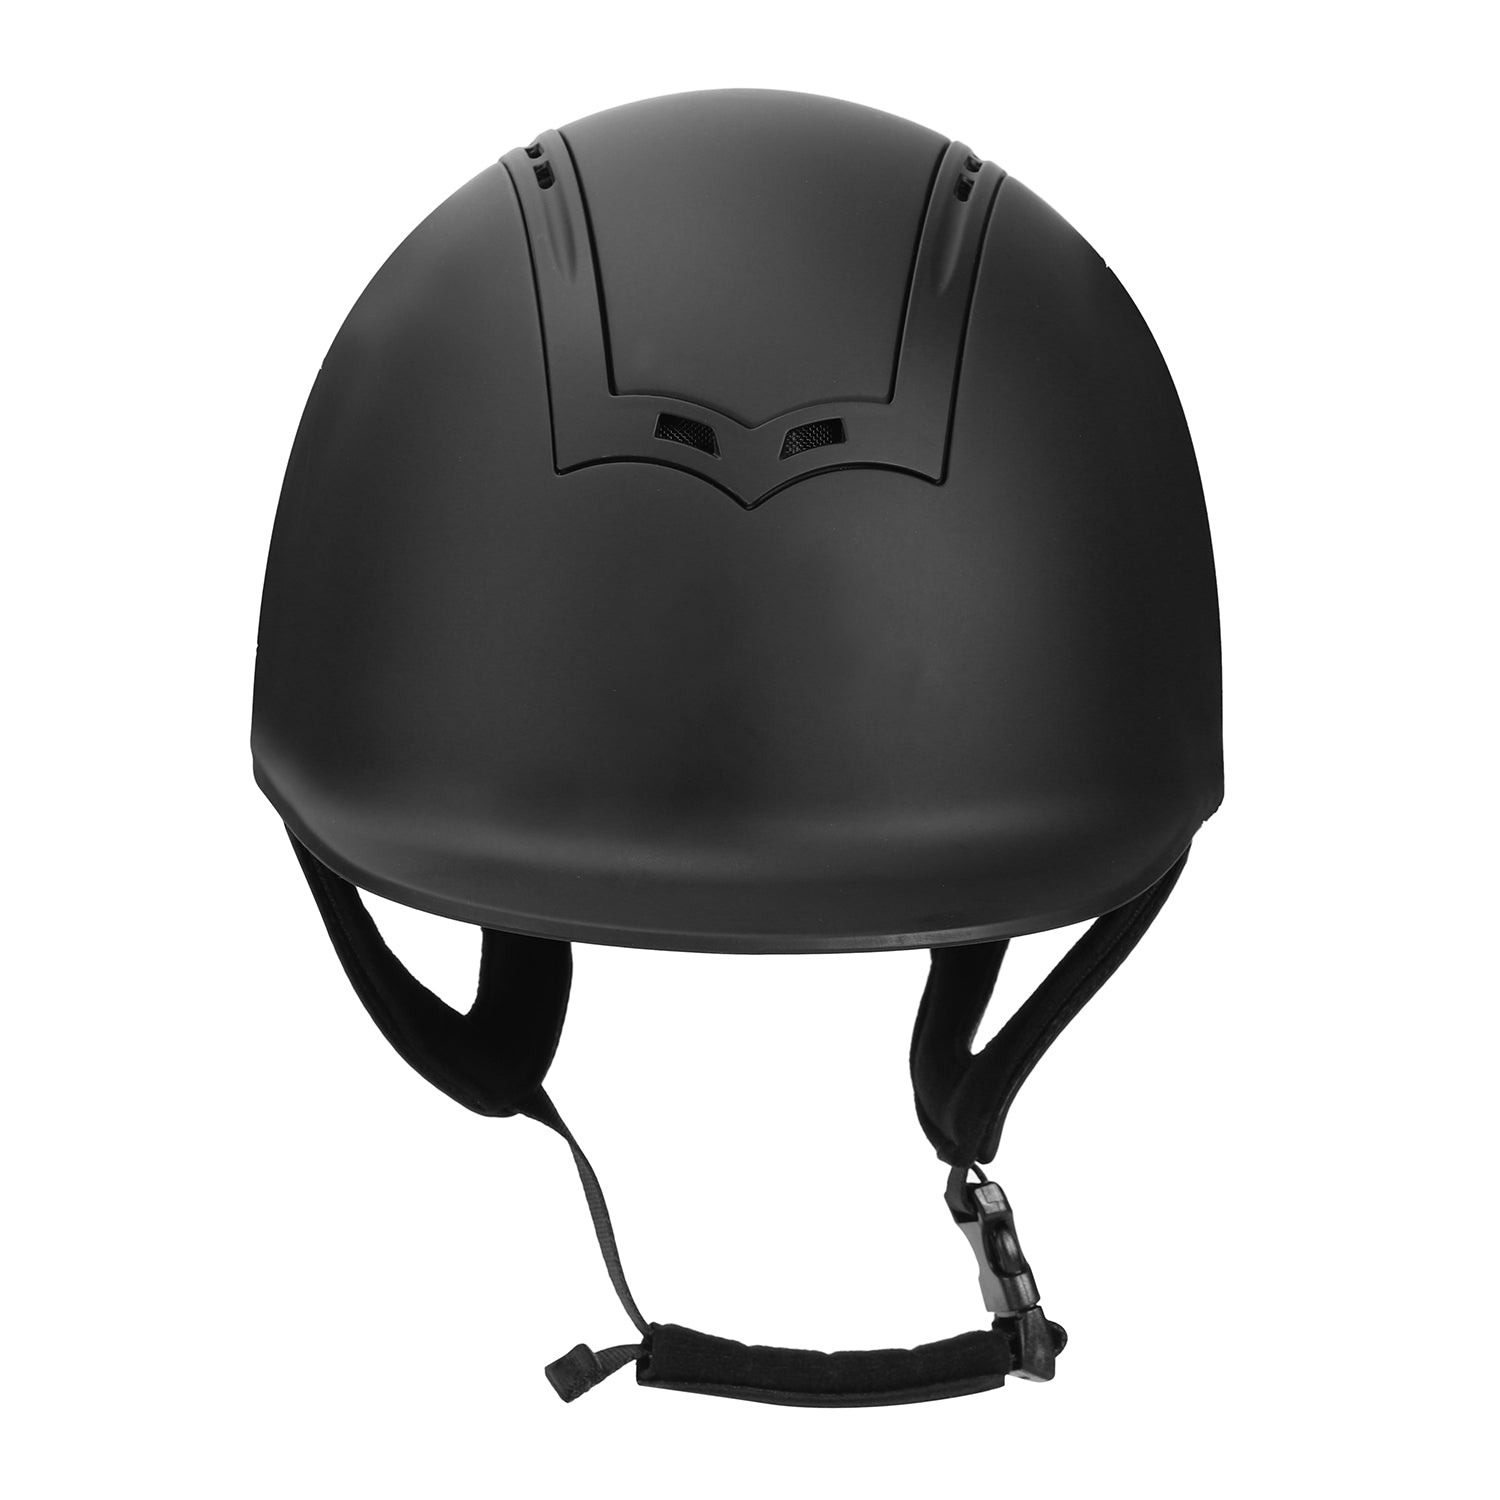 "TuffRider Show Time Helmet|Protective Head Gear for Equestrian Riders - SEI Certified, Tough and Durable - Black""_2"